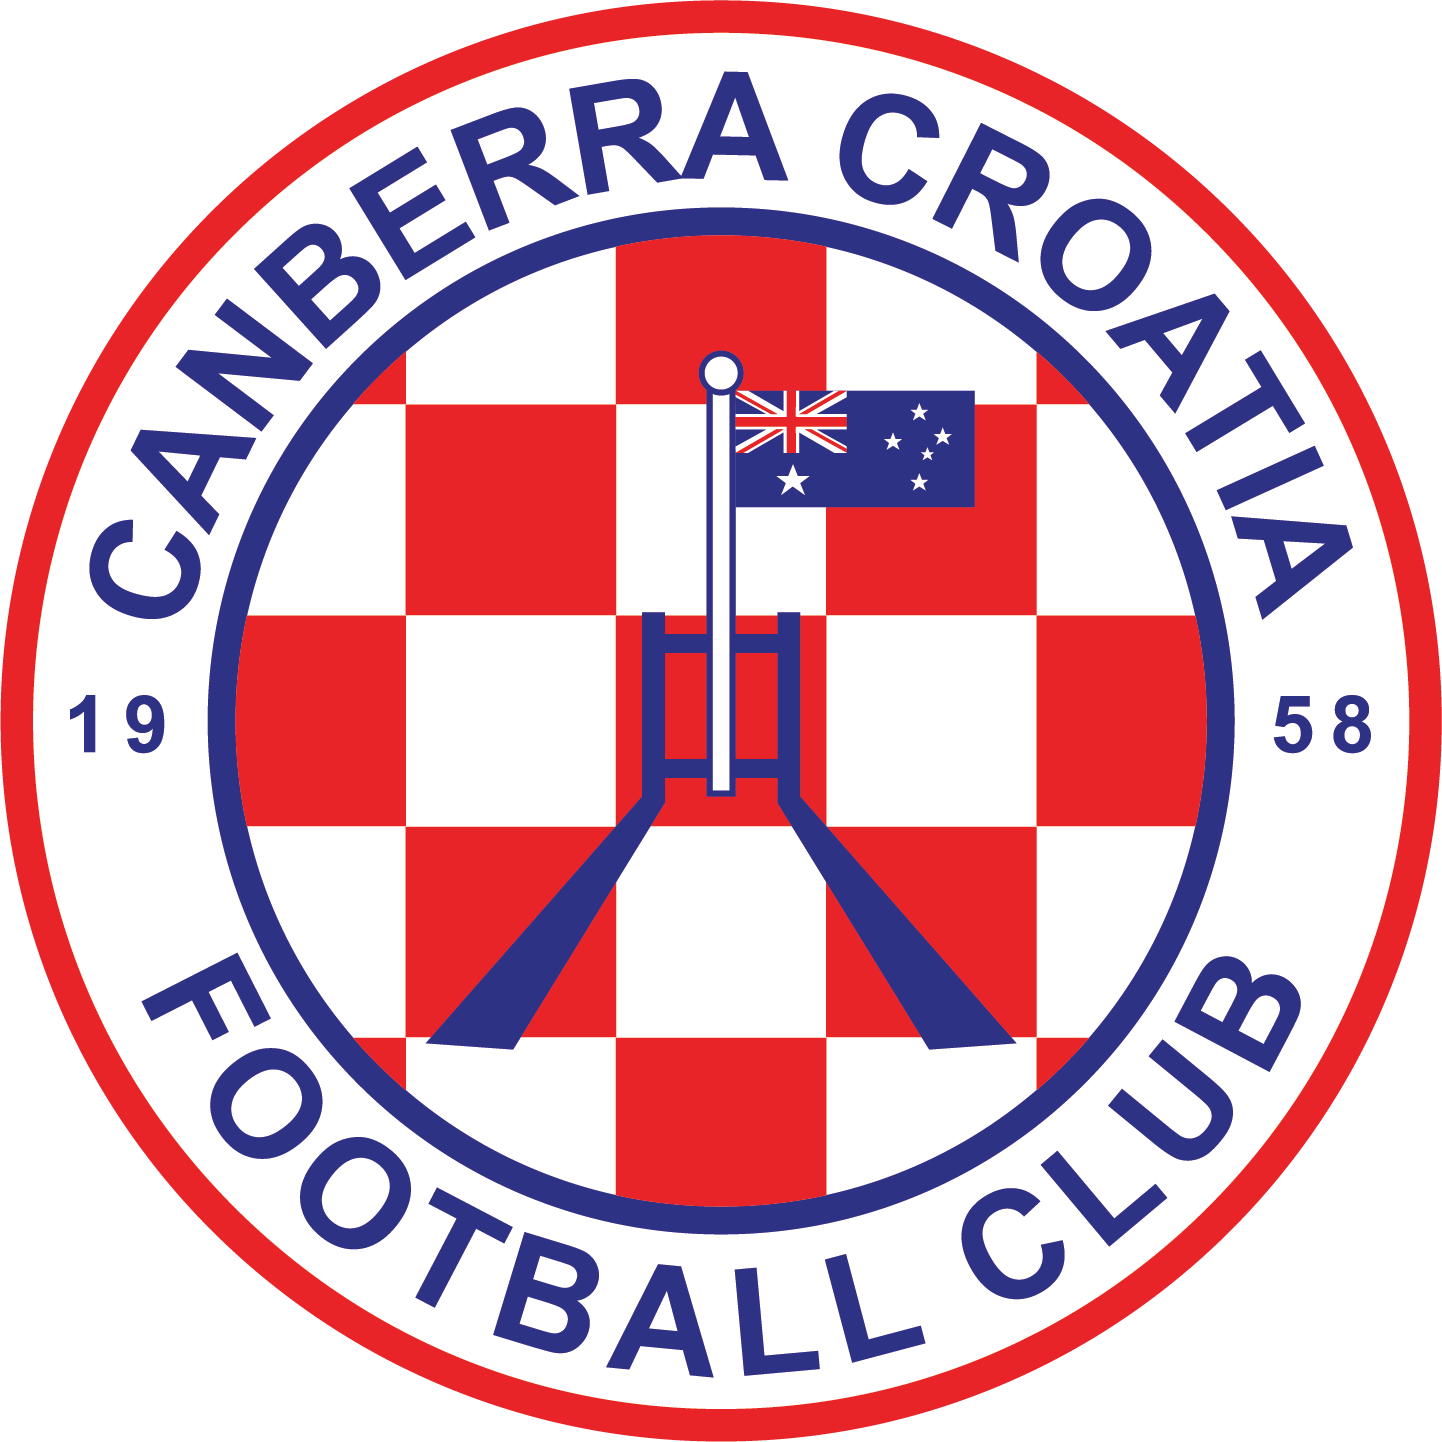 https://croatiadeakinsoccerclub.com.au/wp-content/uploads/2020/07/Canberra-Croatia-Football-Club-300.png